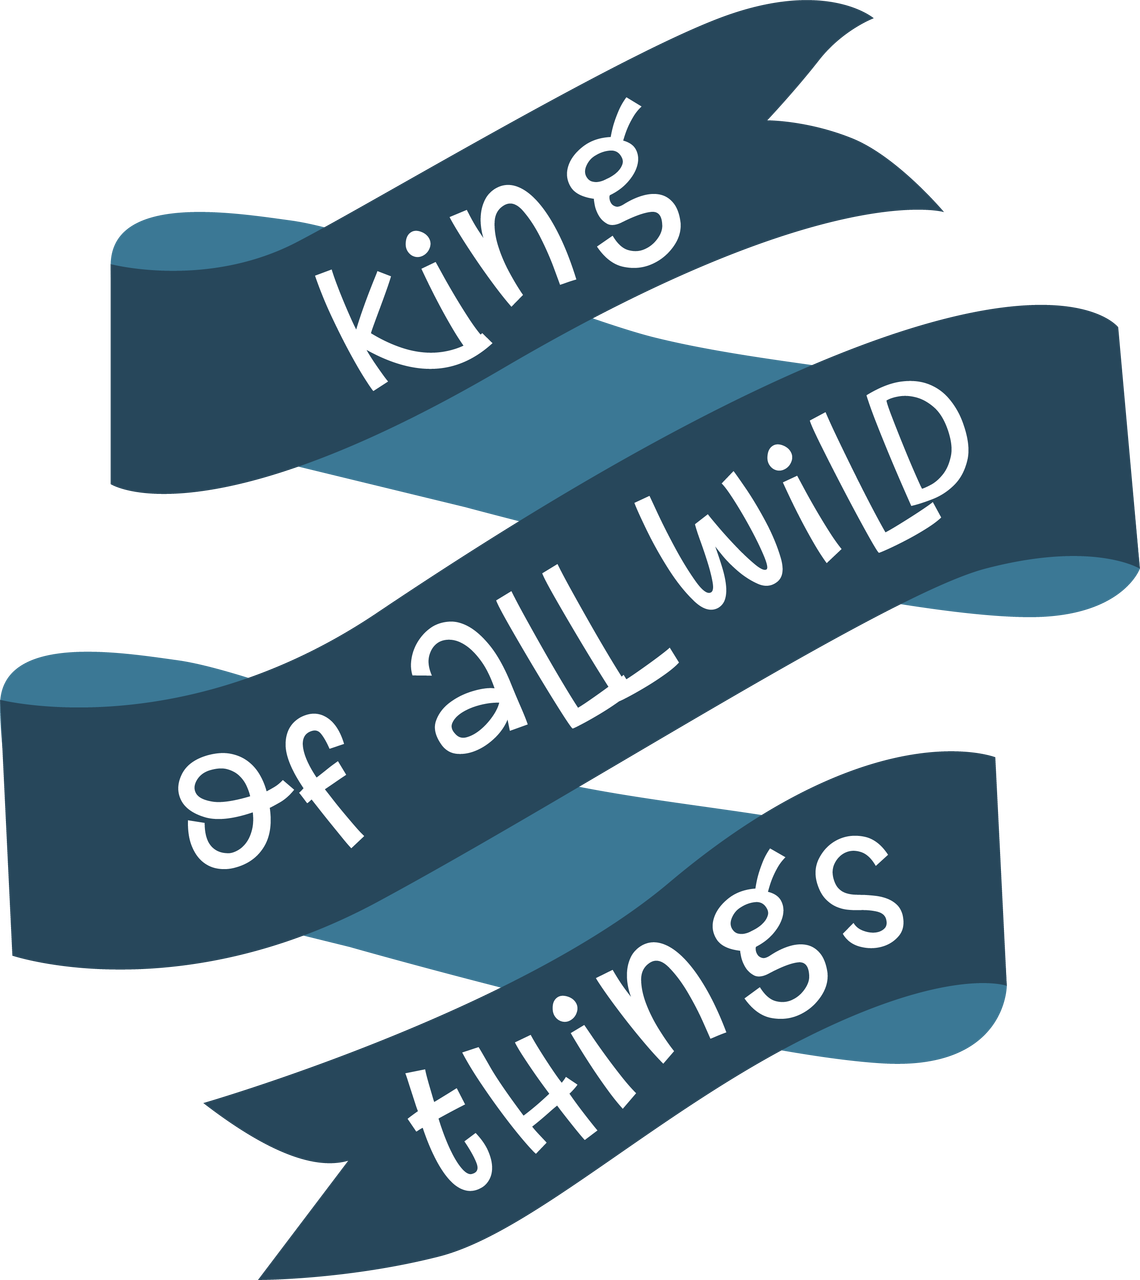 King Of All Wild Things SVG Cut File